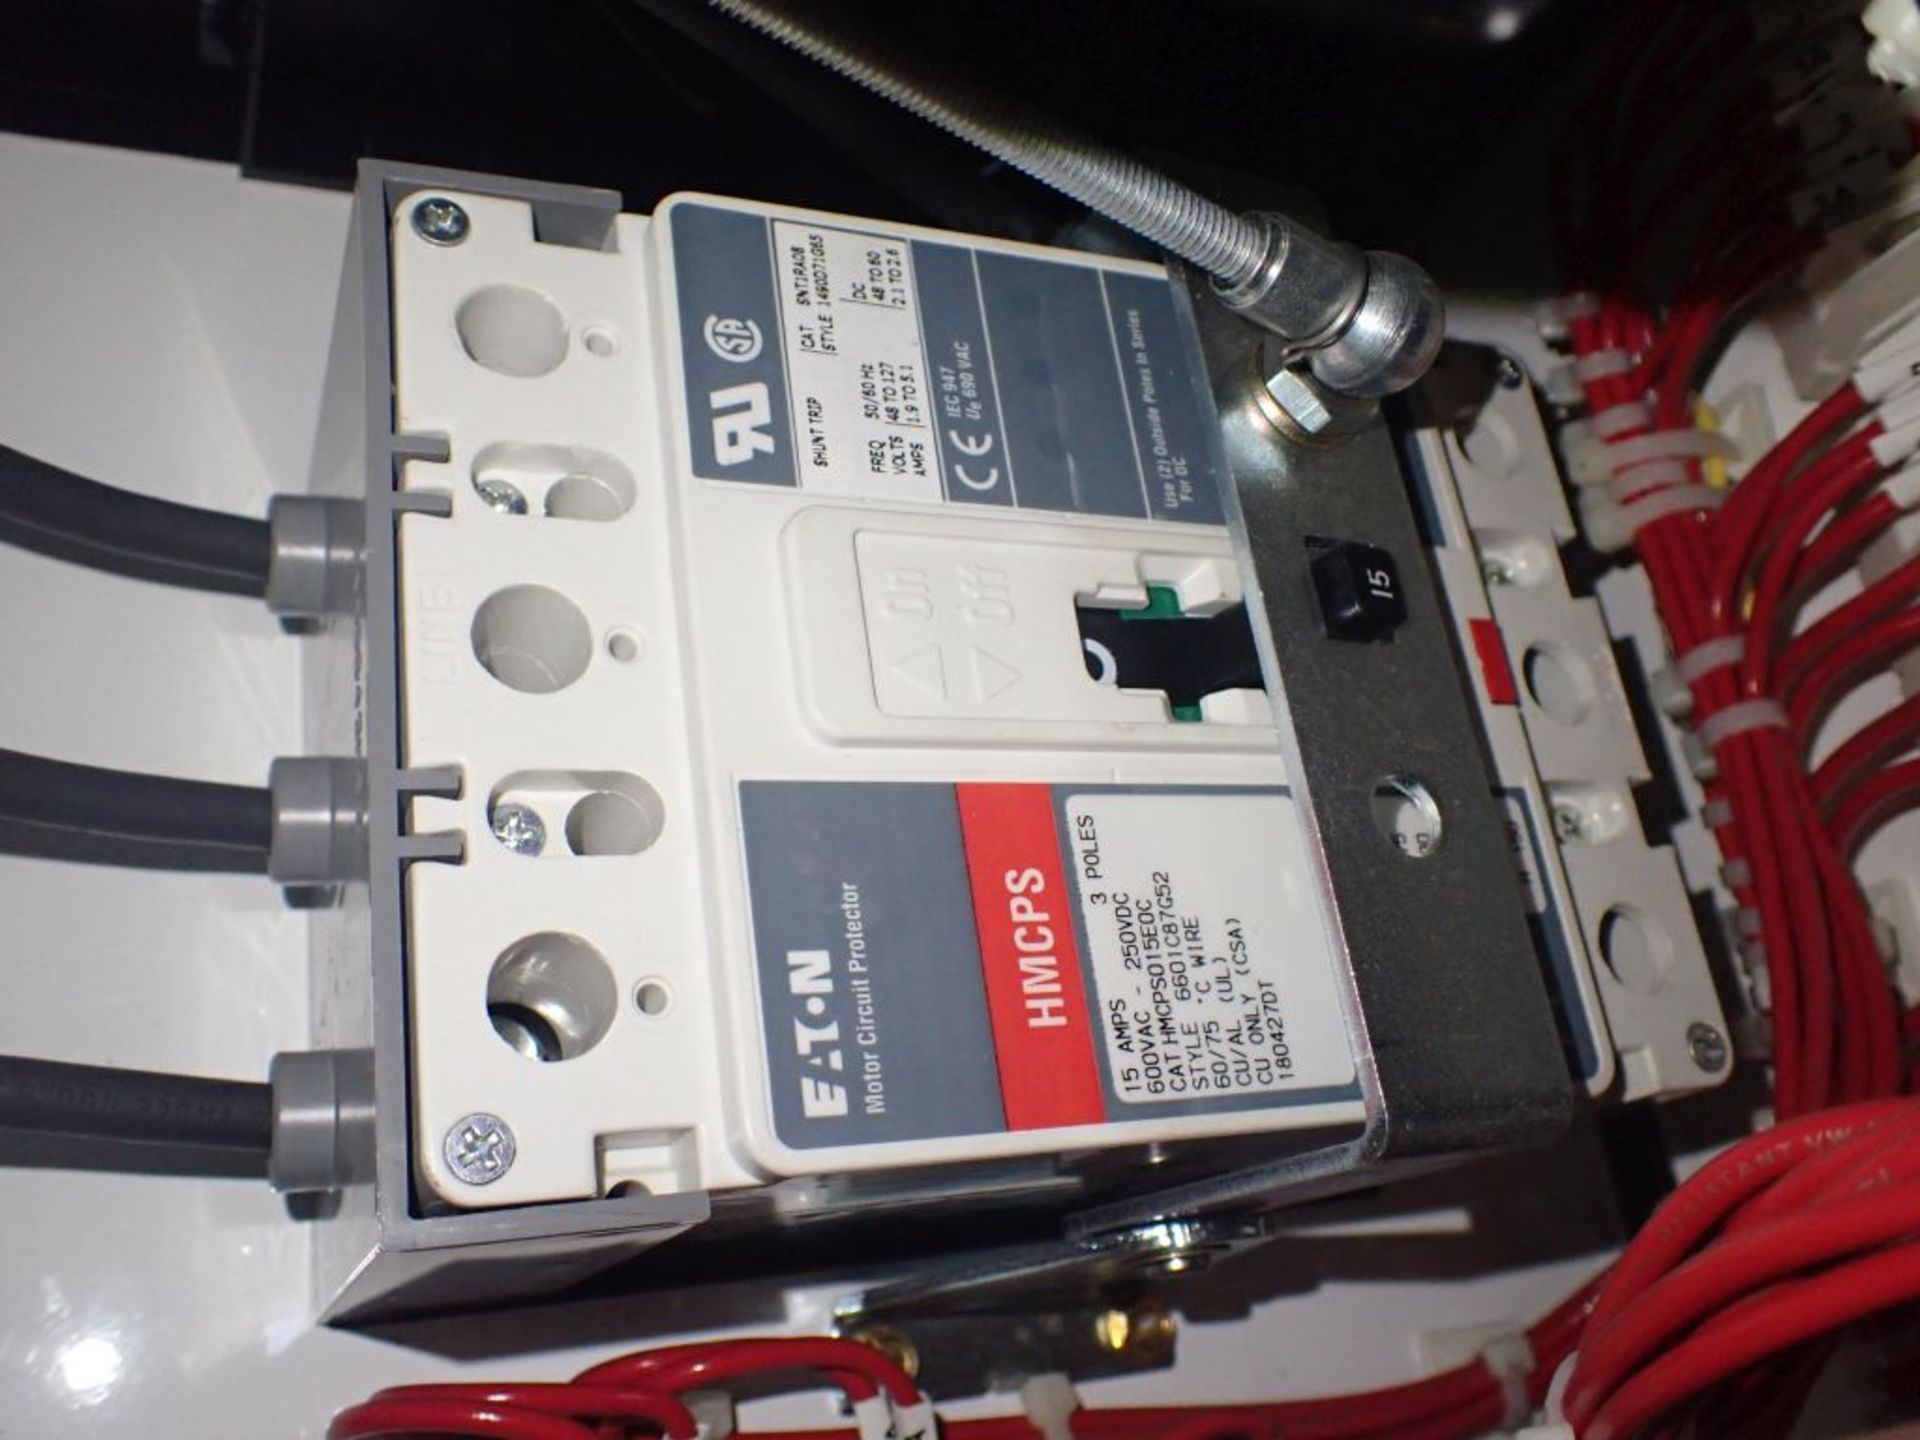 Eaton Freedom 2100 Series Motor Control Center | (2) F206-15A-10HP; (1) FDRB-250A; (1) FDRB-400A; ( - Image 48 of 104